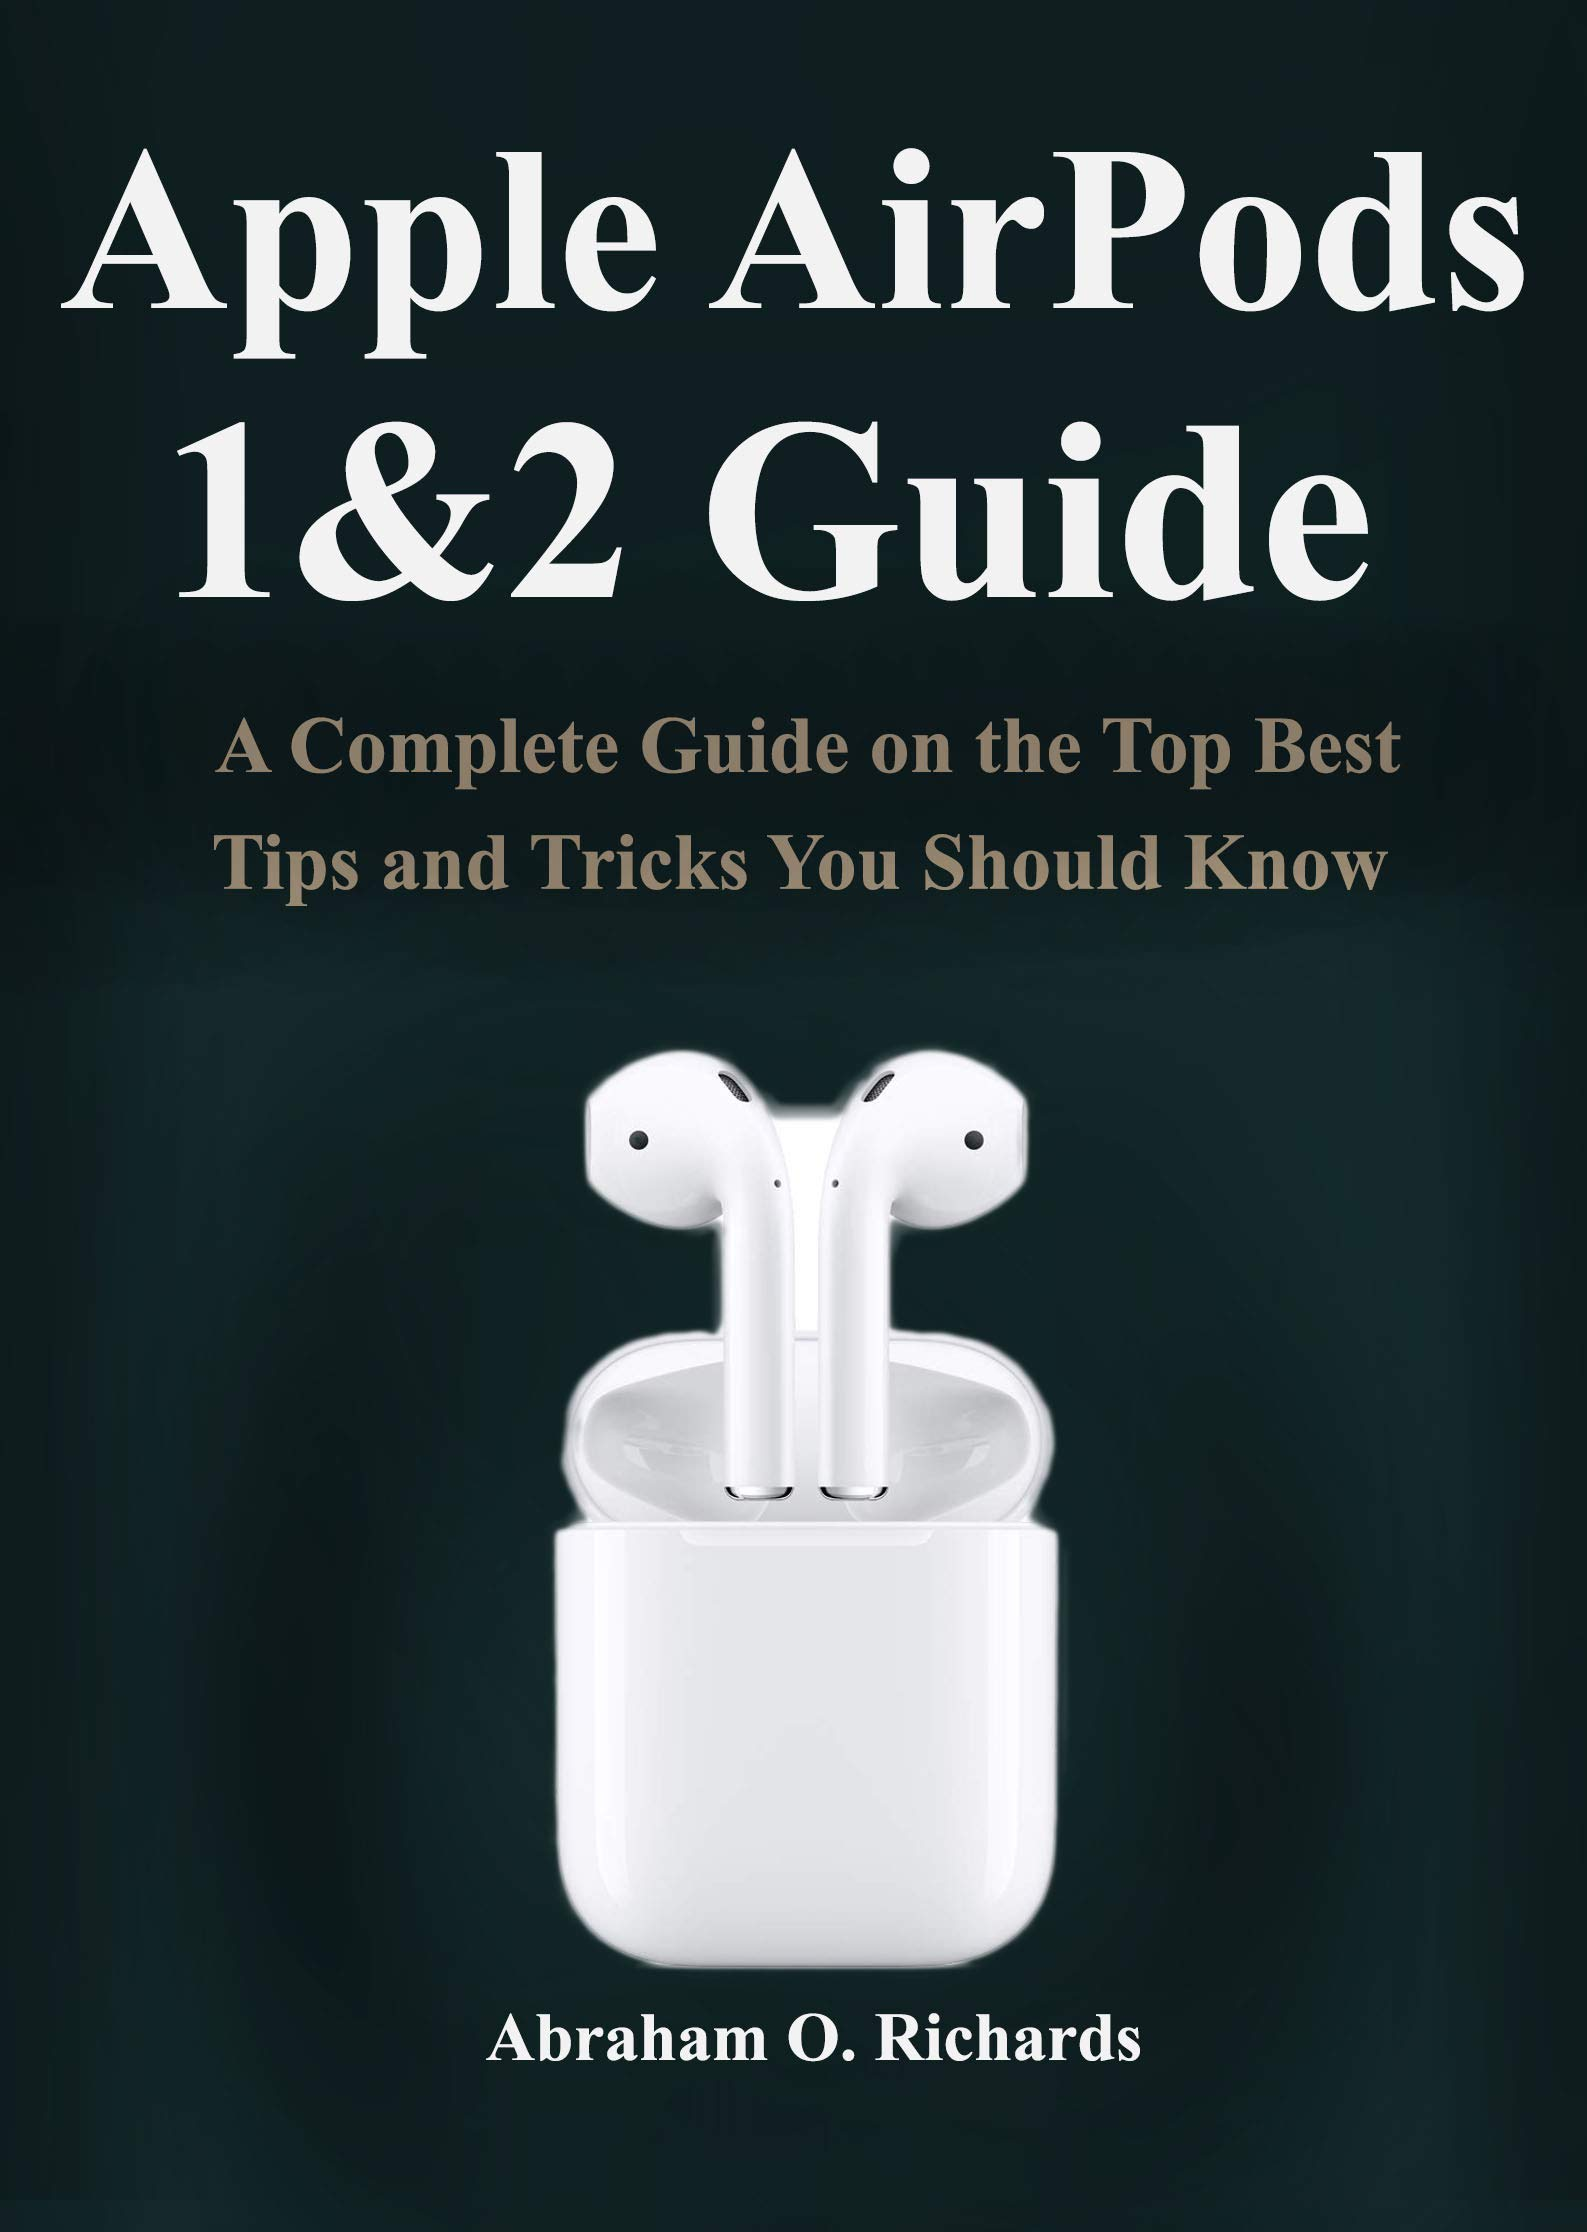 Apple Airpod 1 & 2 Guide: A Complete Guide on the